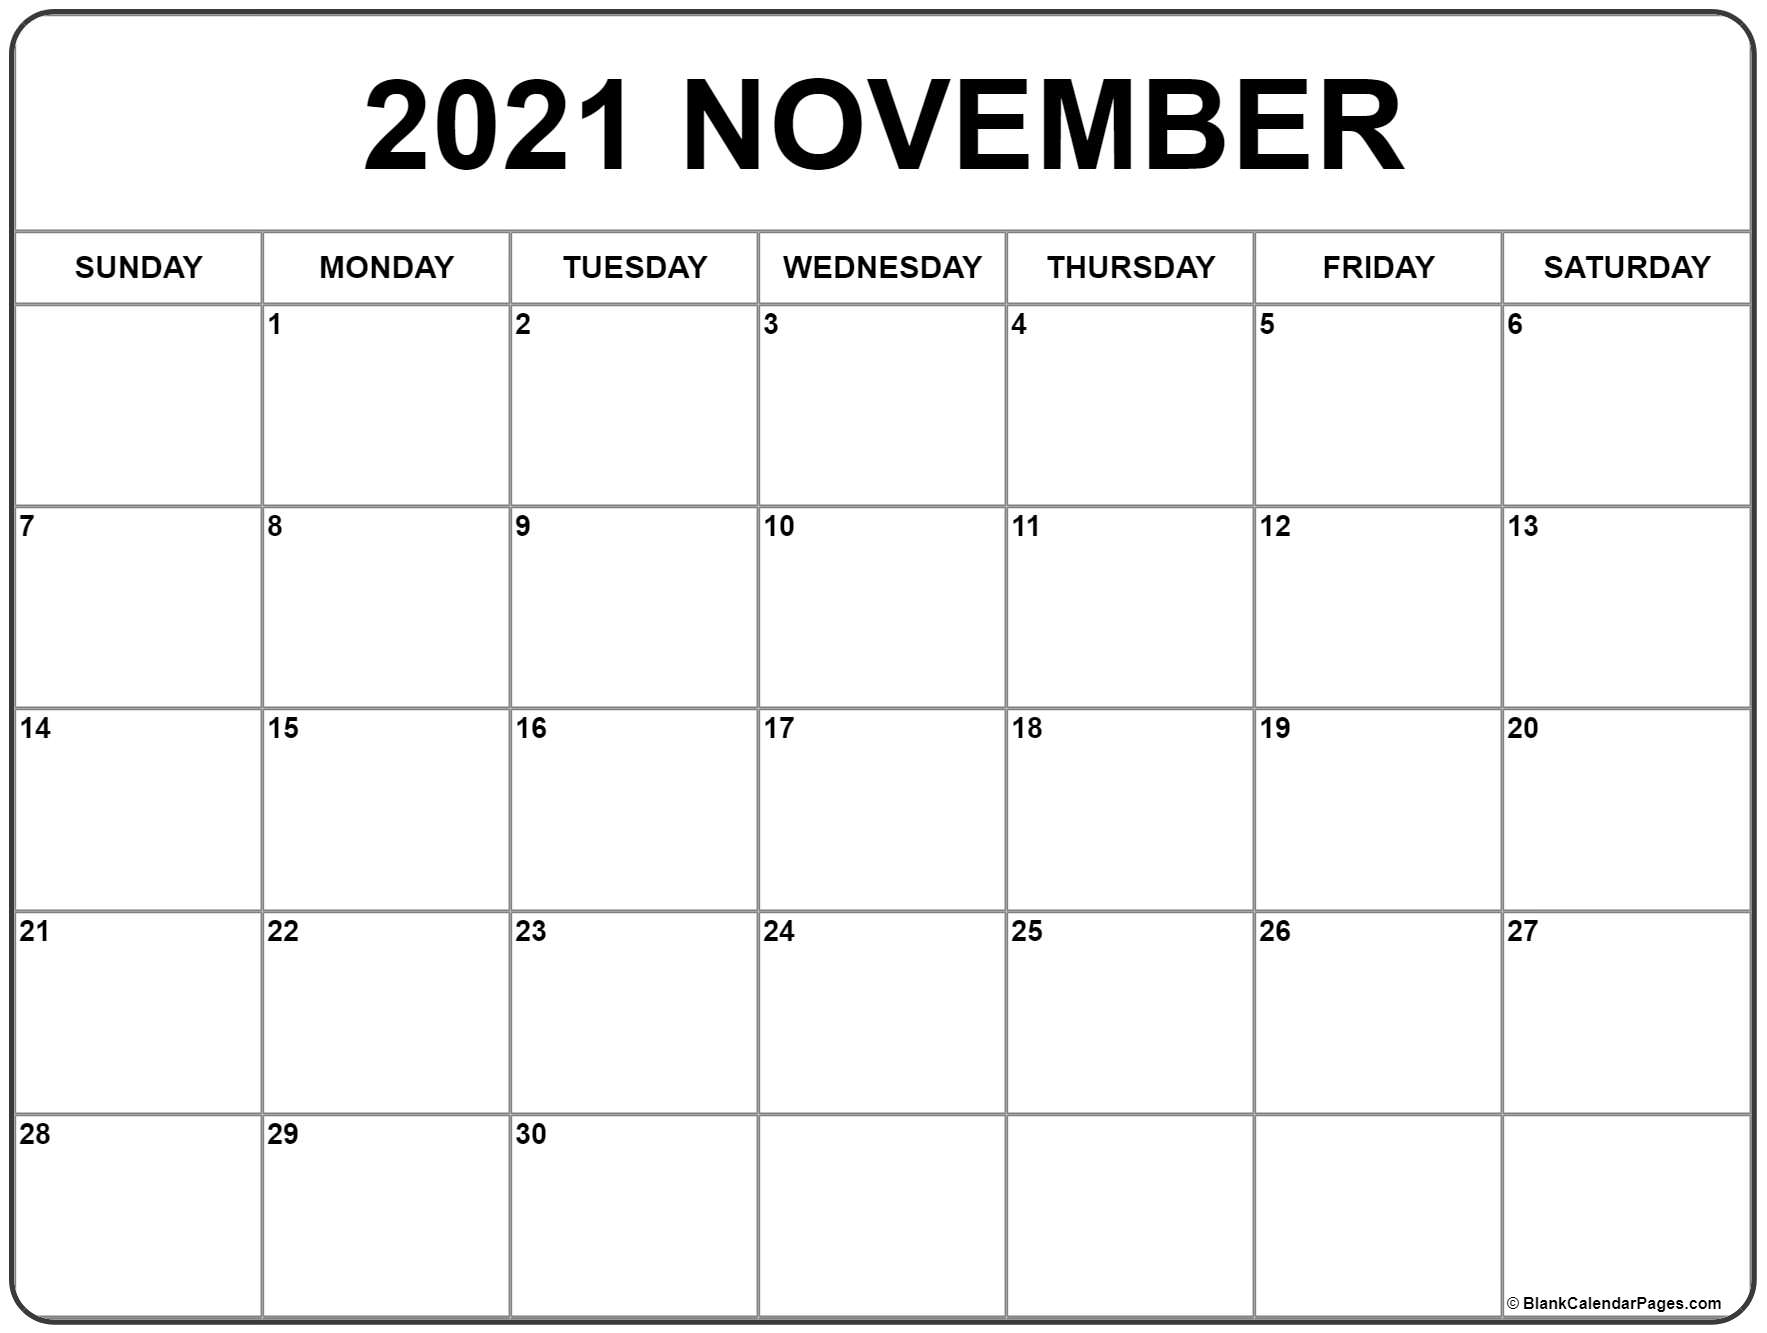 November 2021 Calendar | Free Printable Monthly Calendars in Calendar With November 2021 Mexican Names